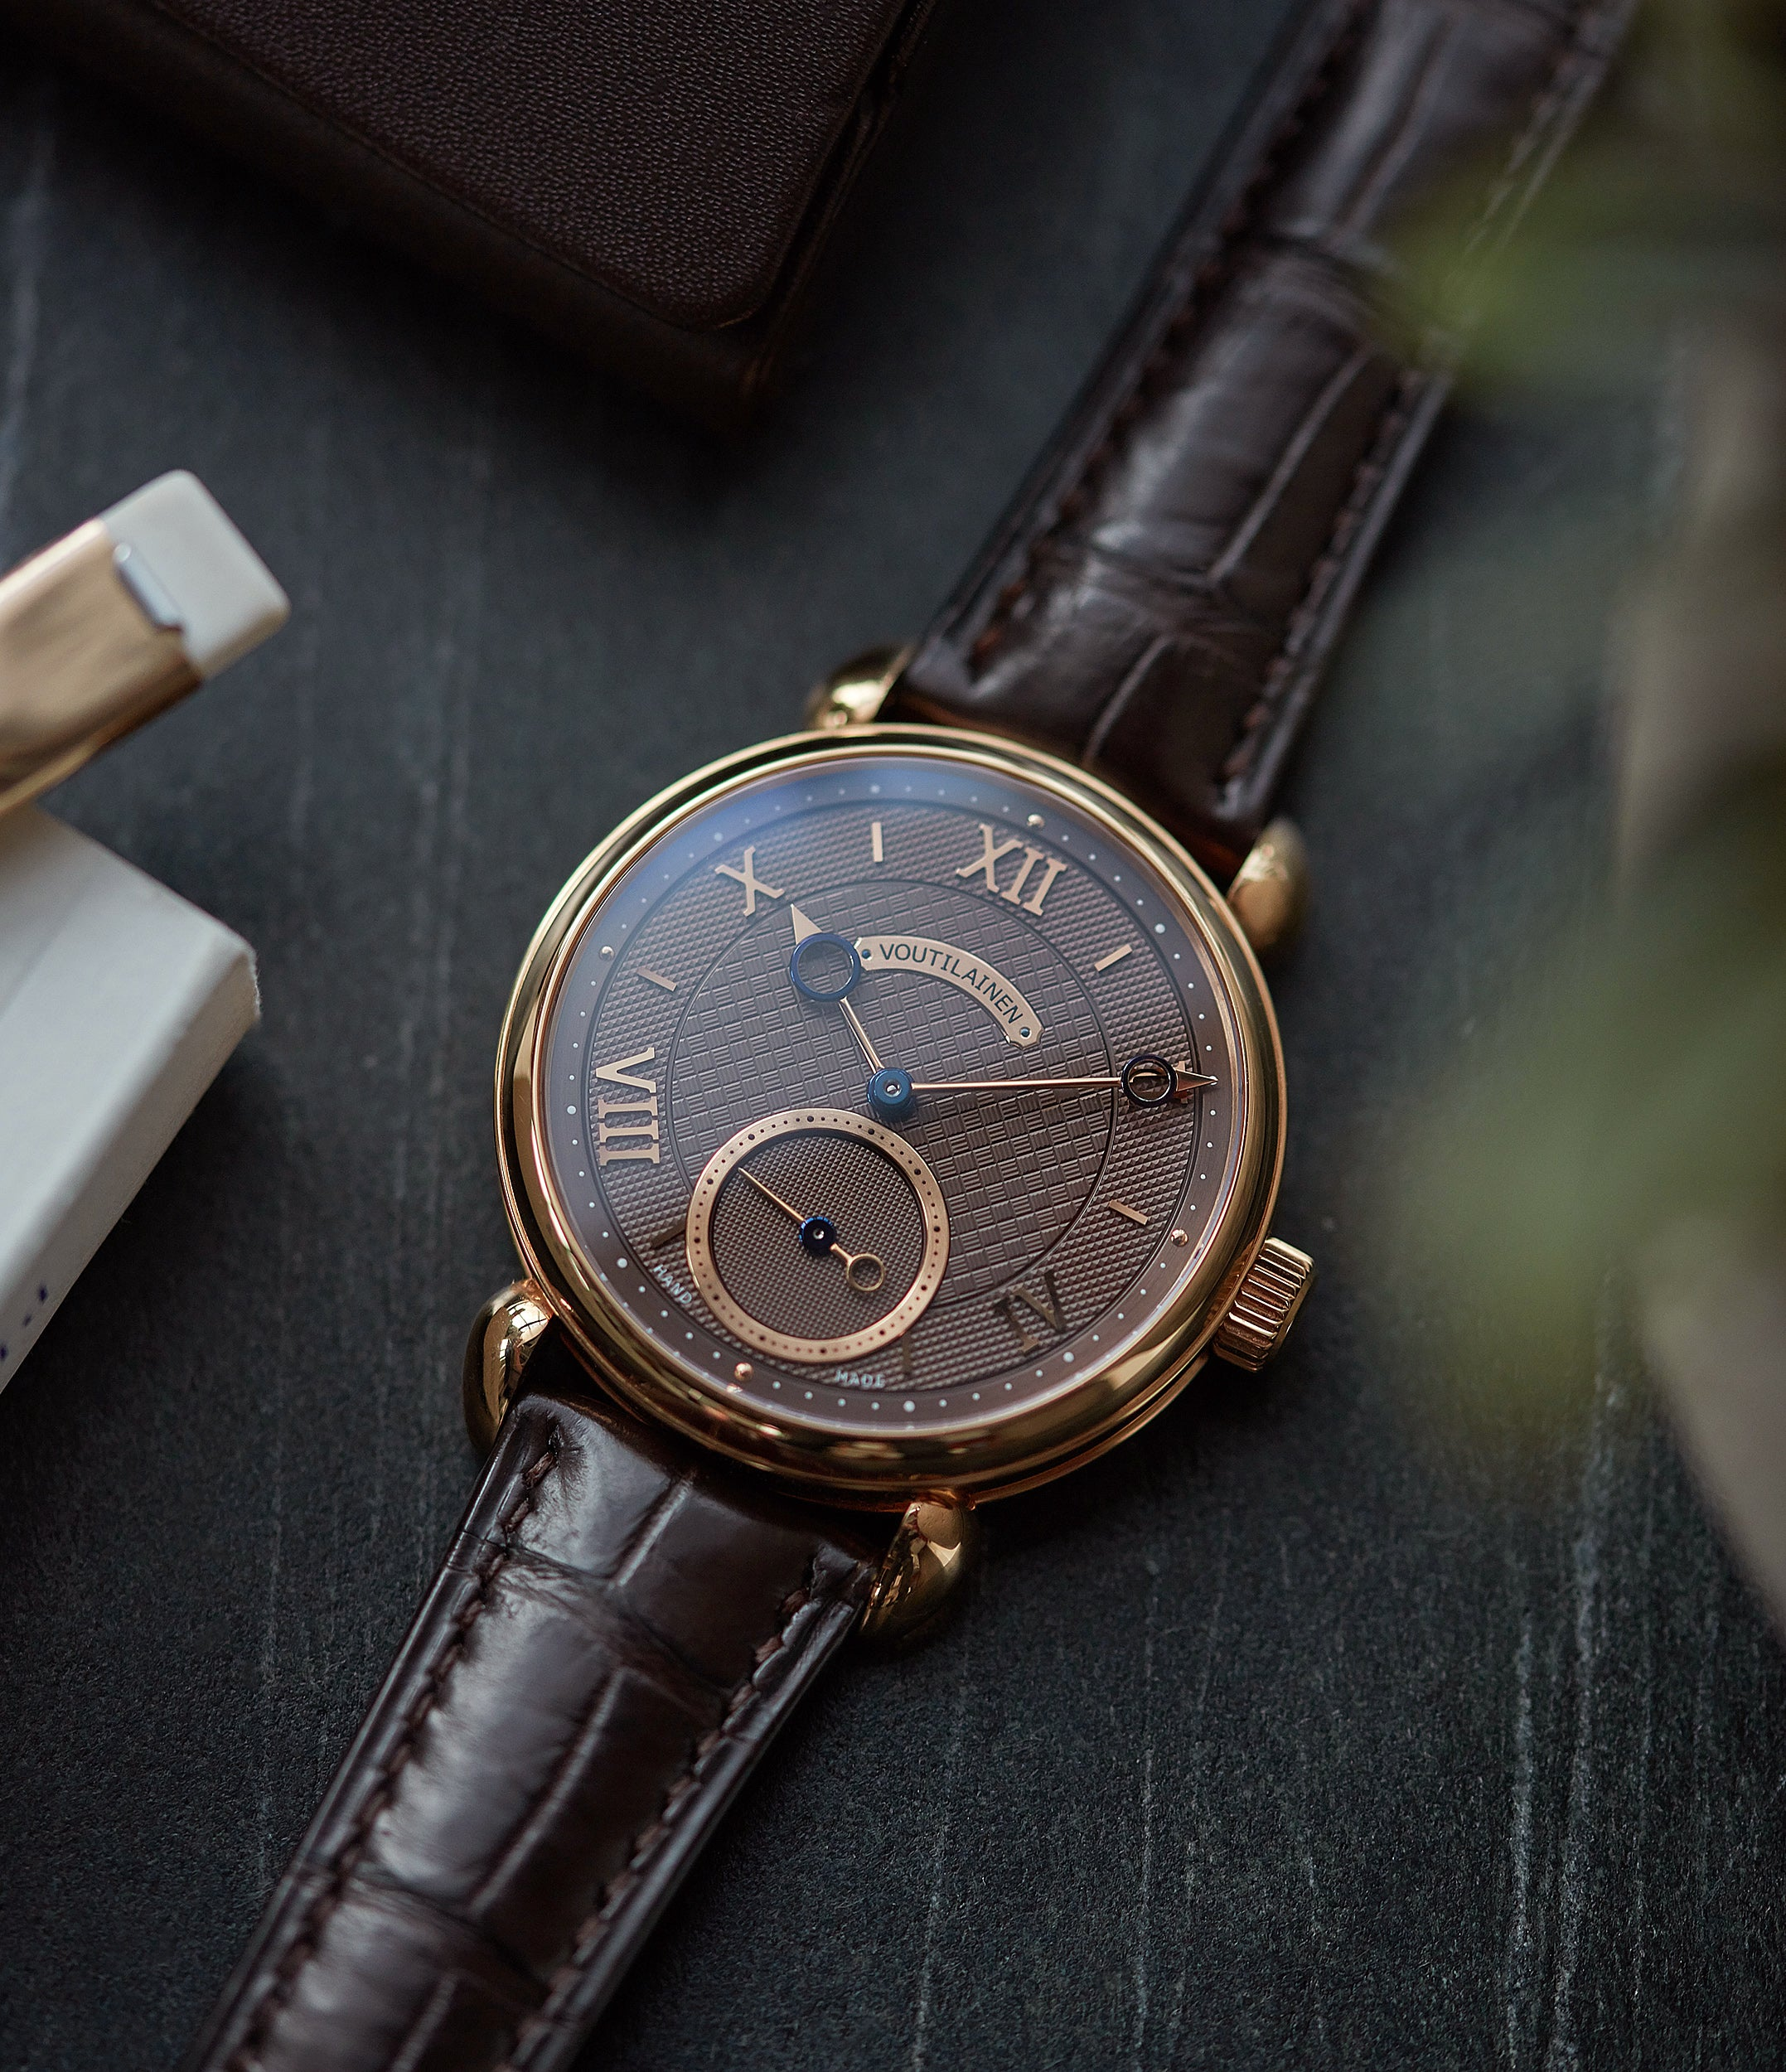 rare Voutilainen Vingt-8 Cal. 28 rose gold dress watch with brown guilloche dial for sale at A Collected Man London approved re-seller of preowned Voutilainen watches